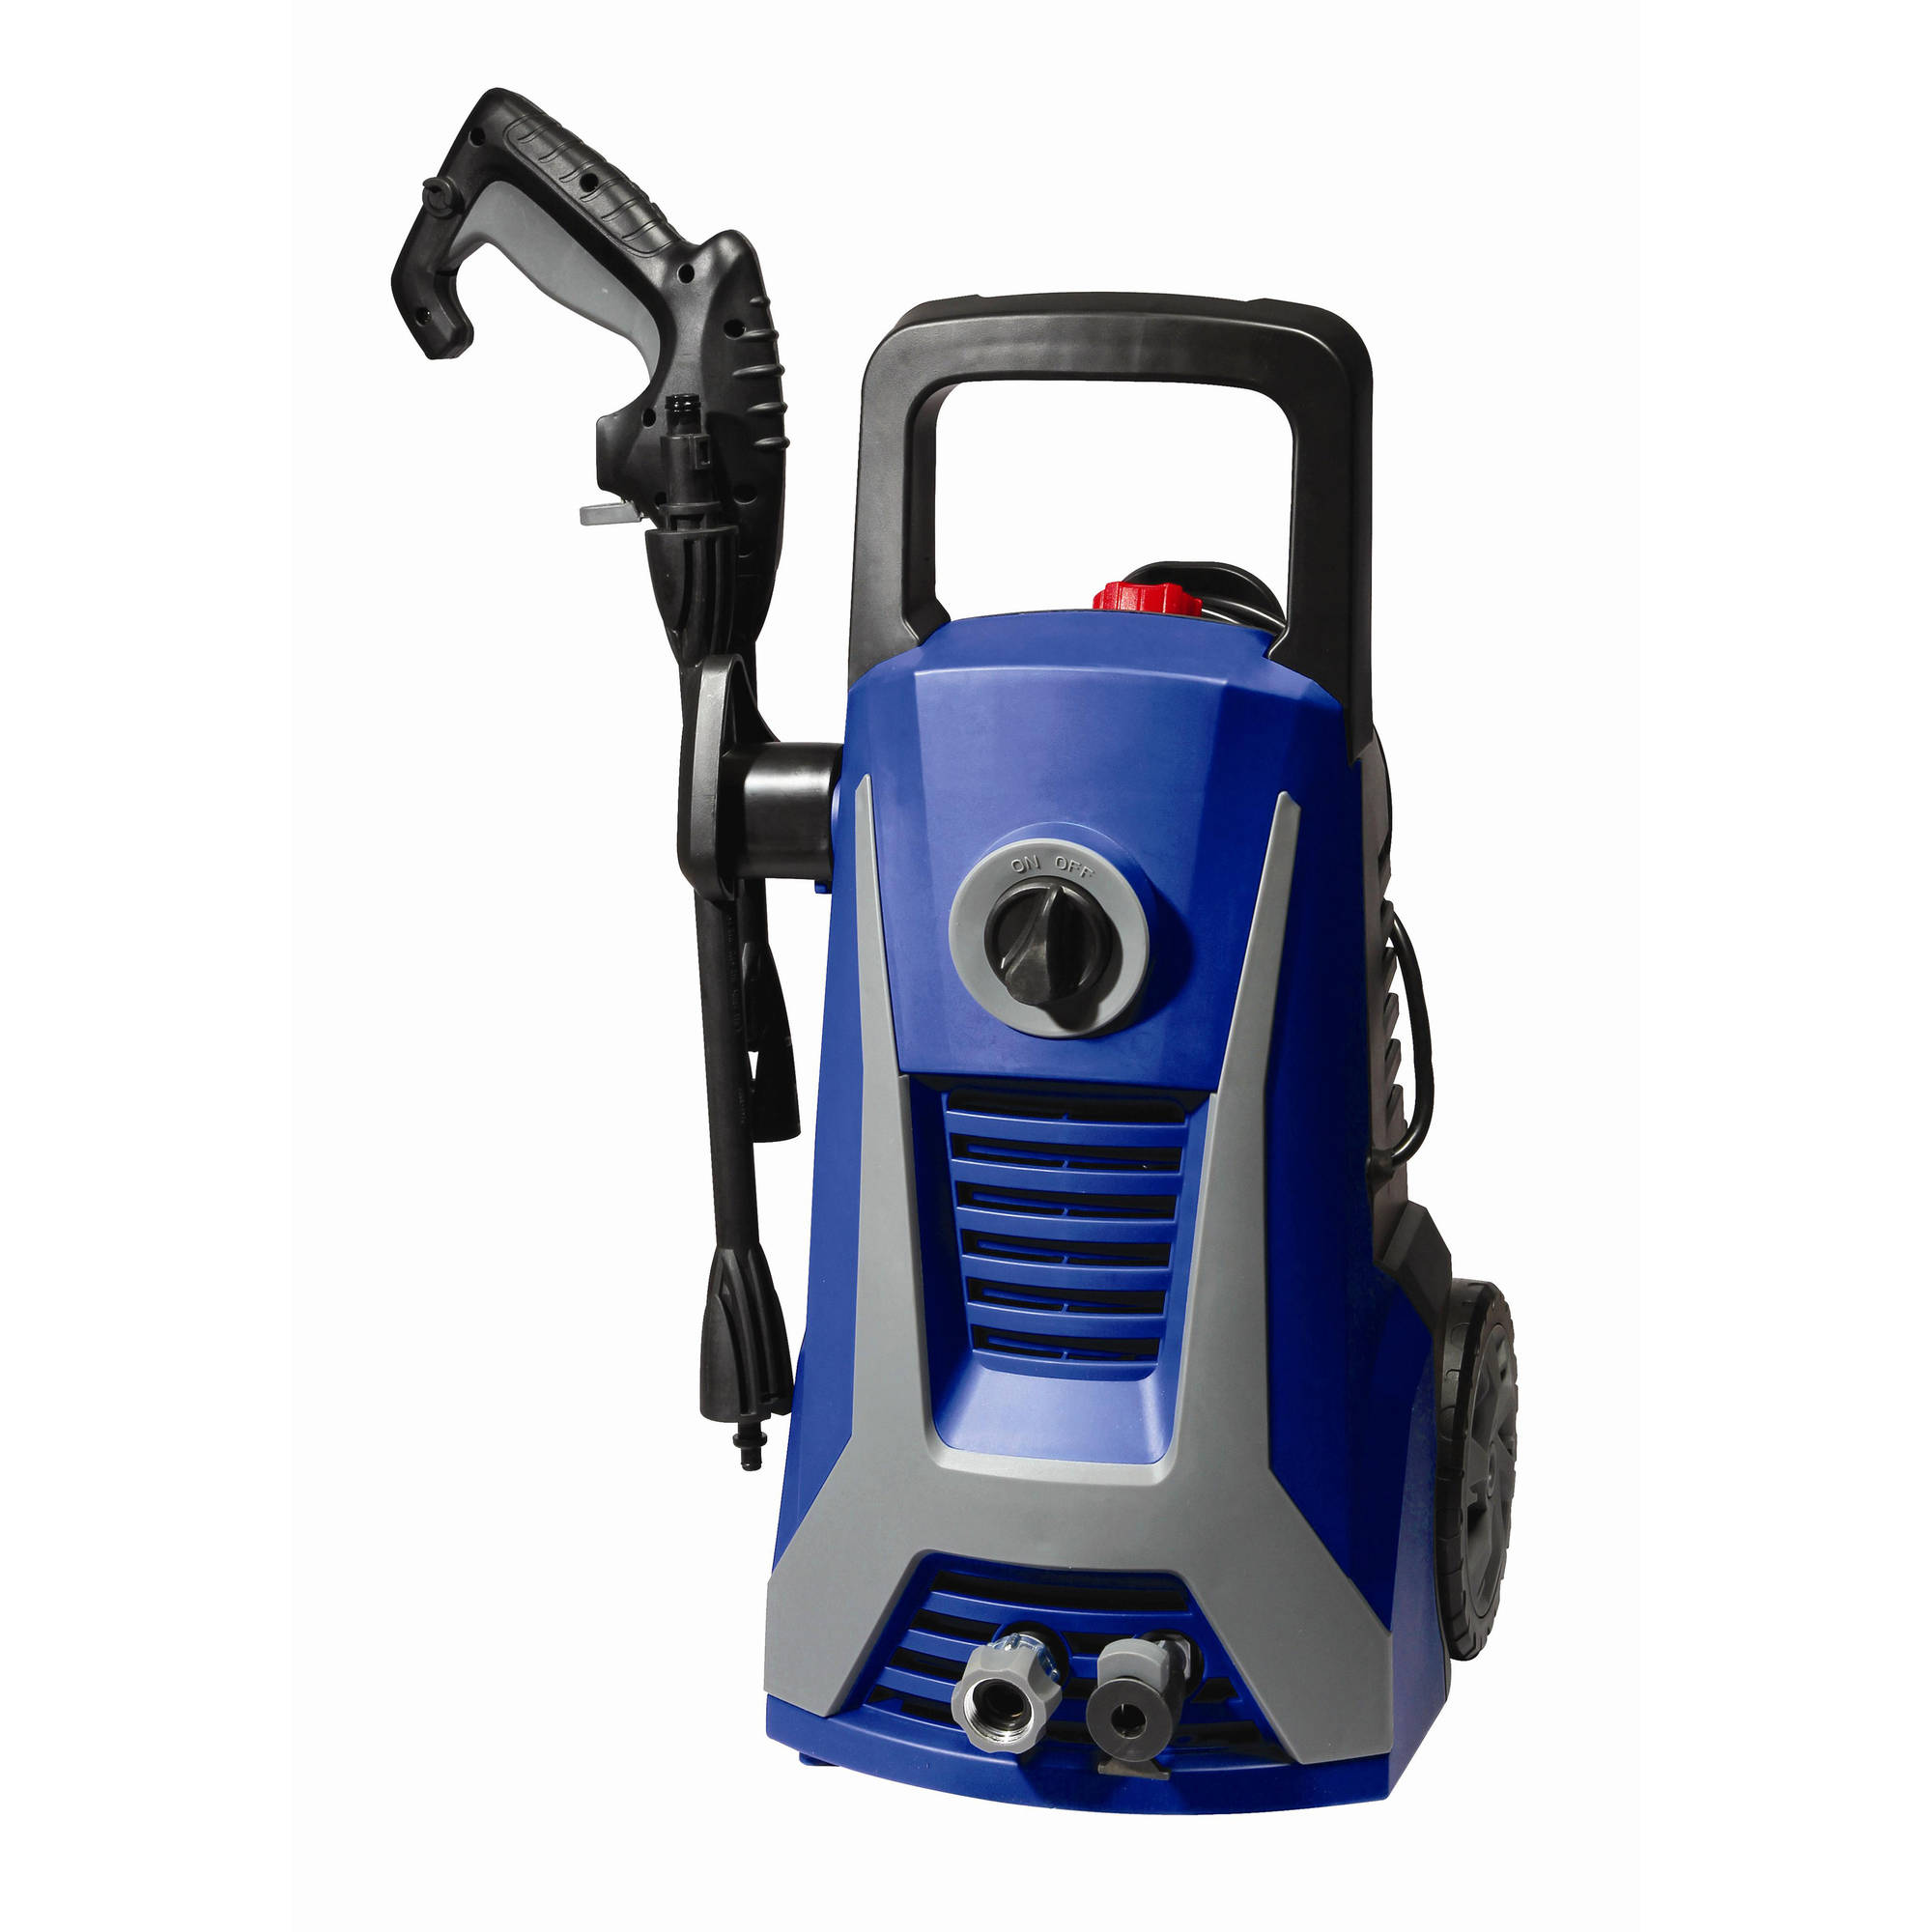 Workchoice 1,500 PSI Electric Pressure Washer #BY02-VBP-S